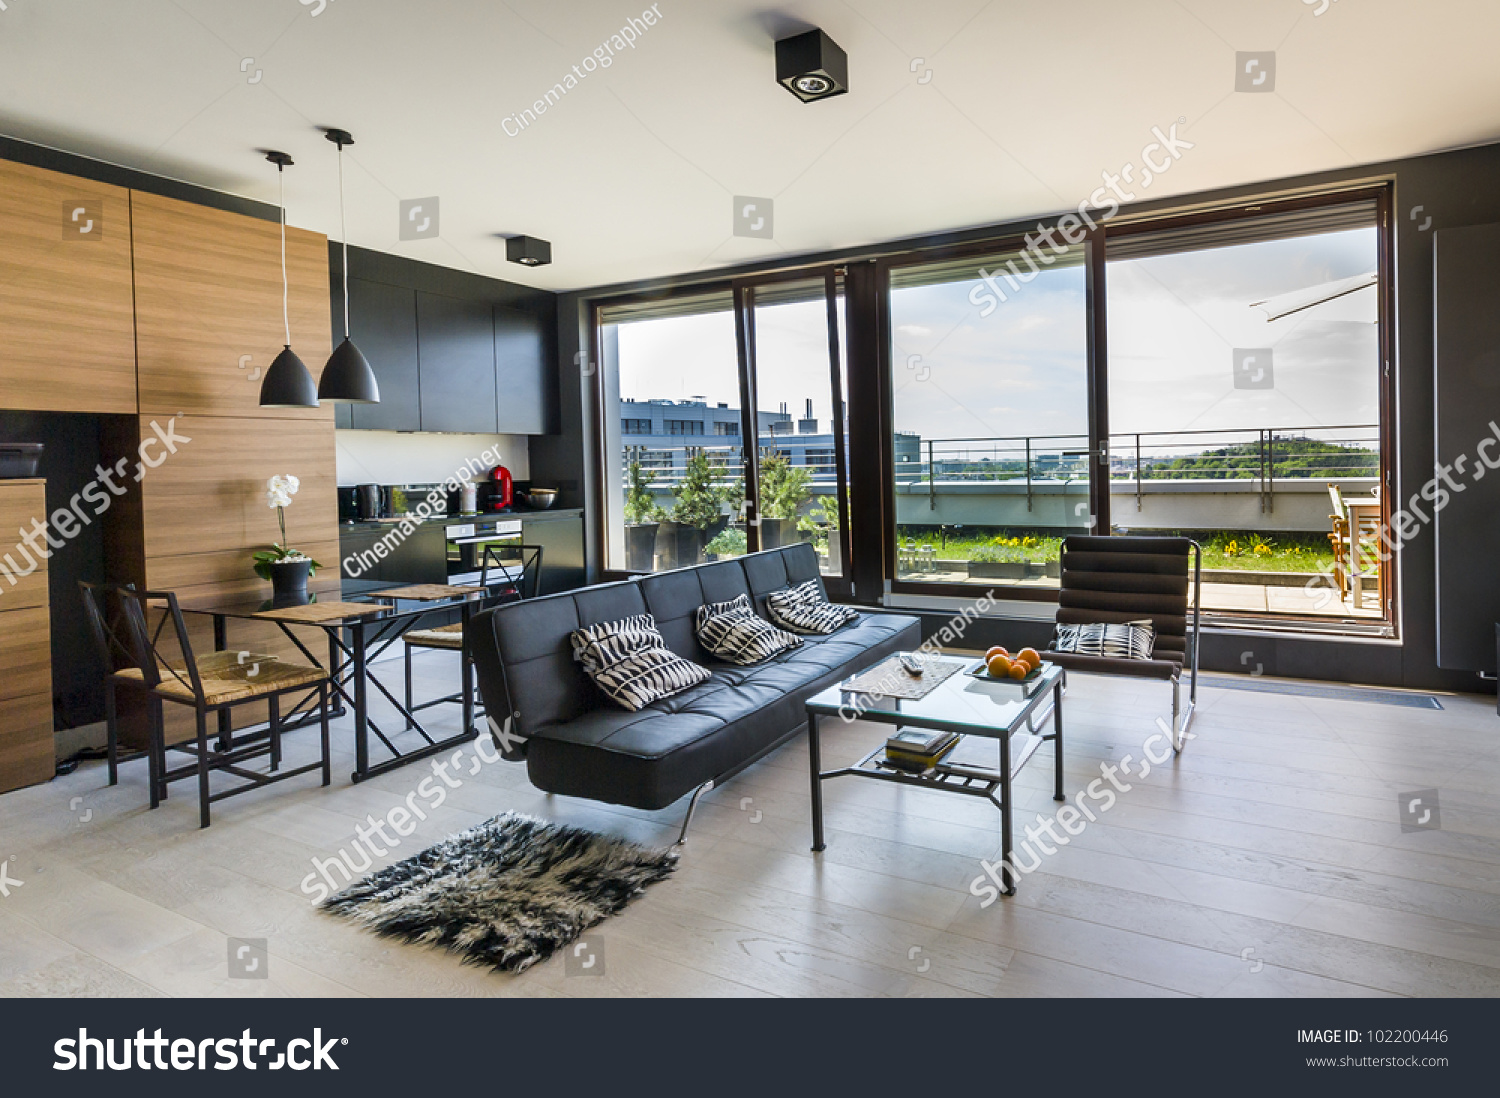 Modern interior design room with panoramic windows #102200446